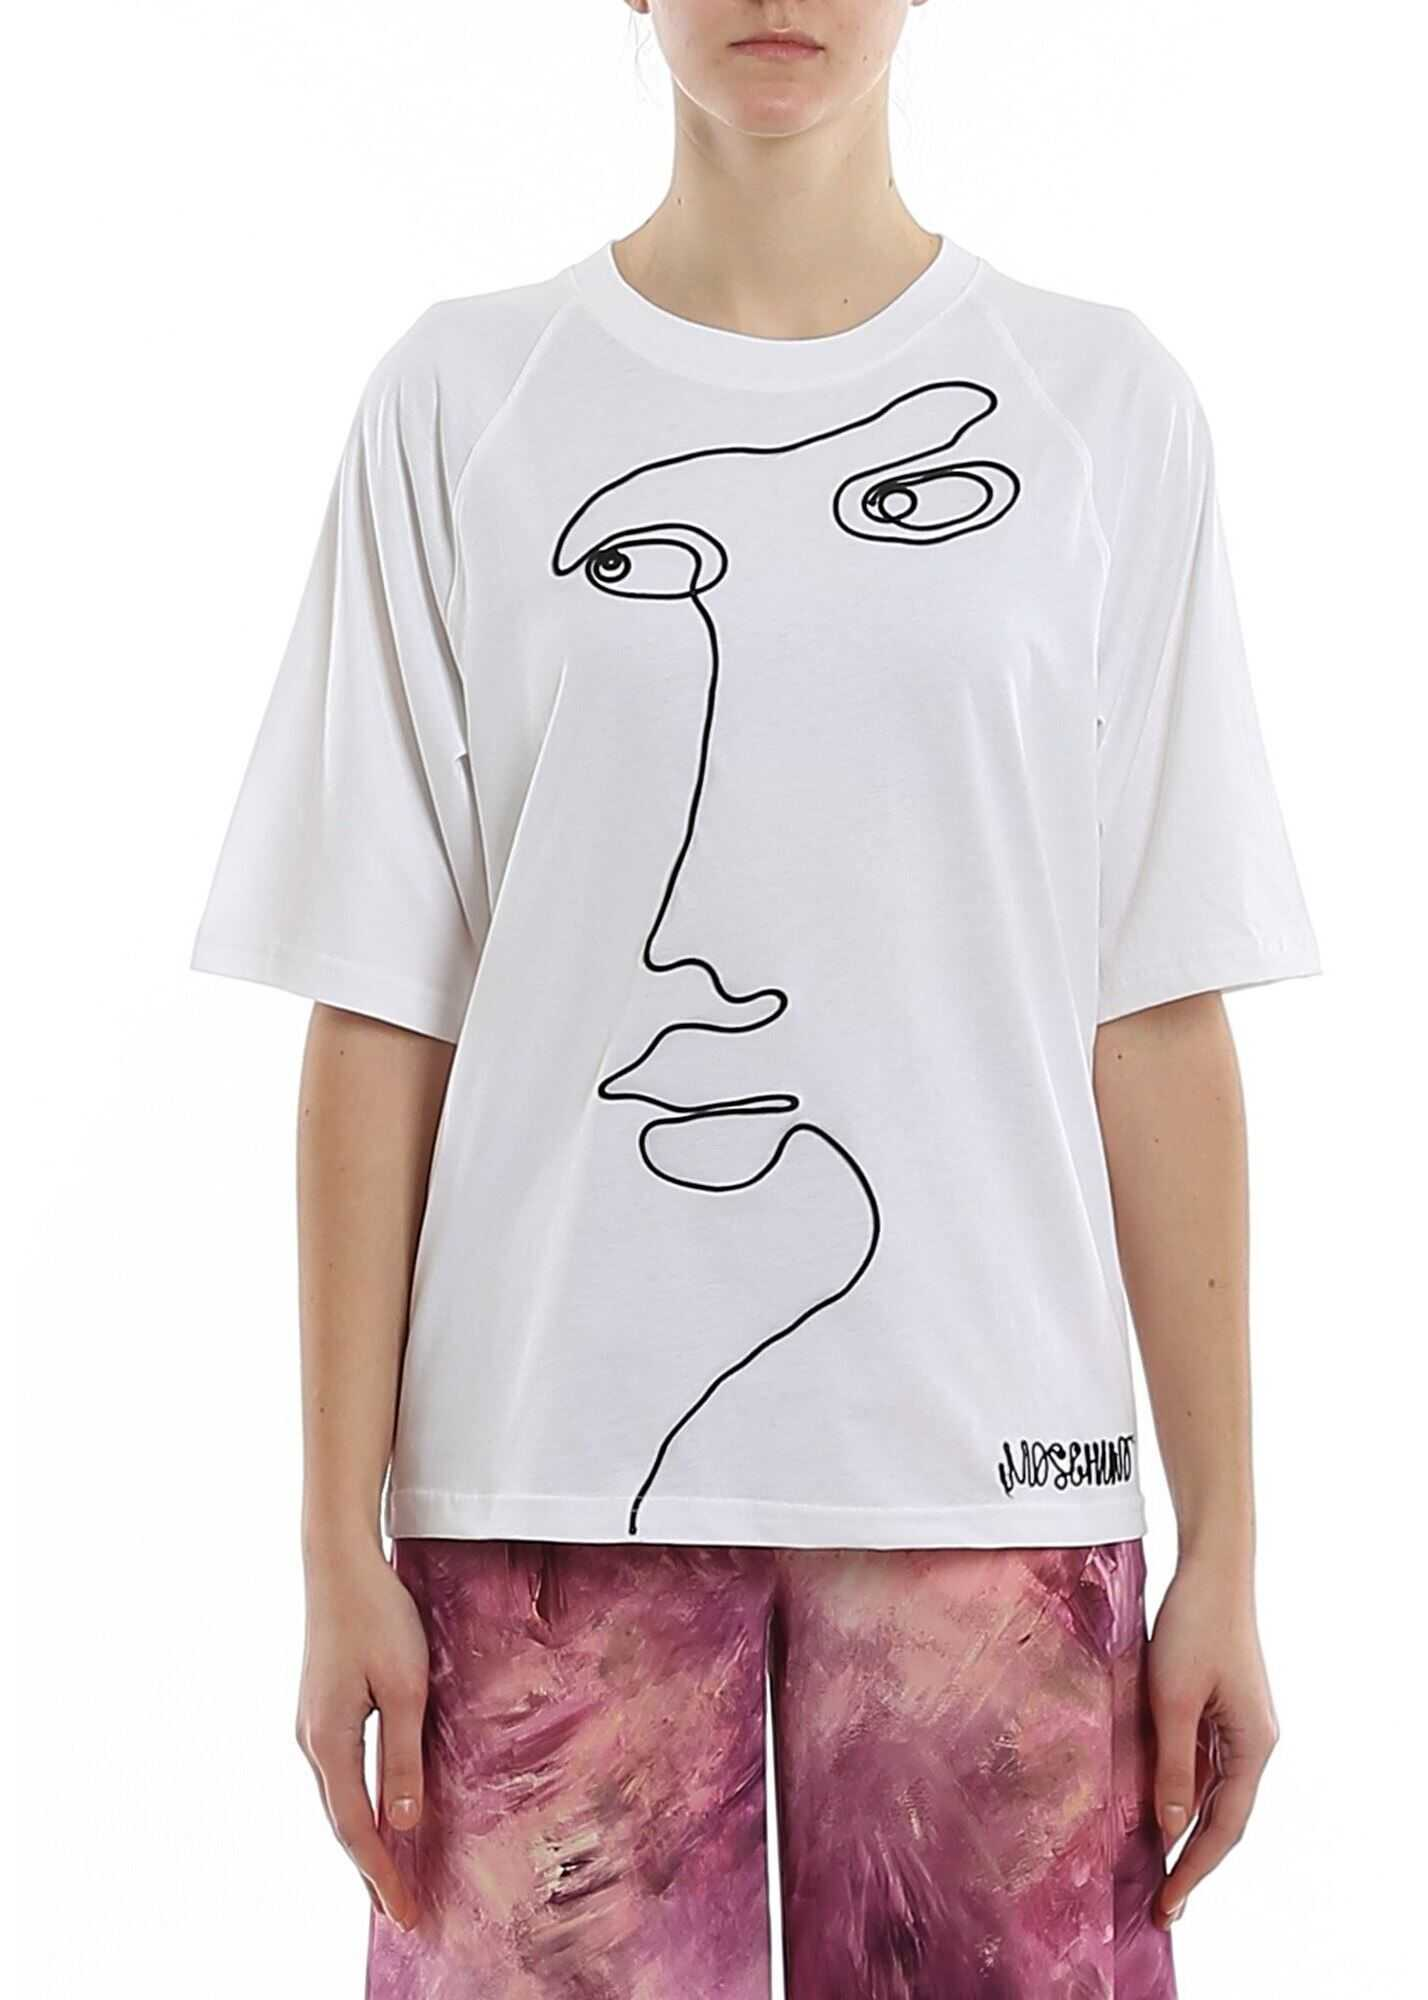 Moschino Cornely Embroidery T-Shirt In White White